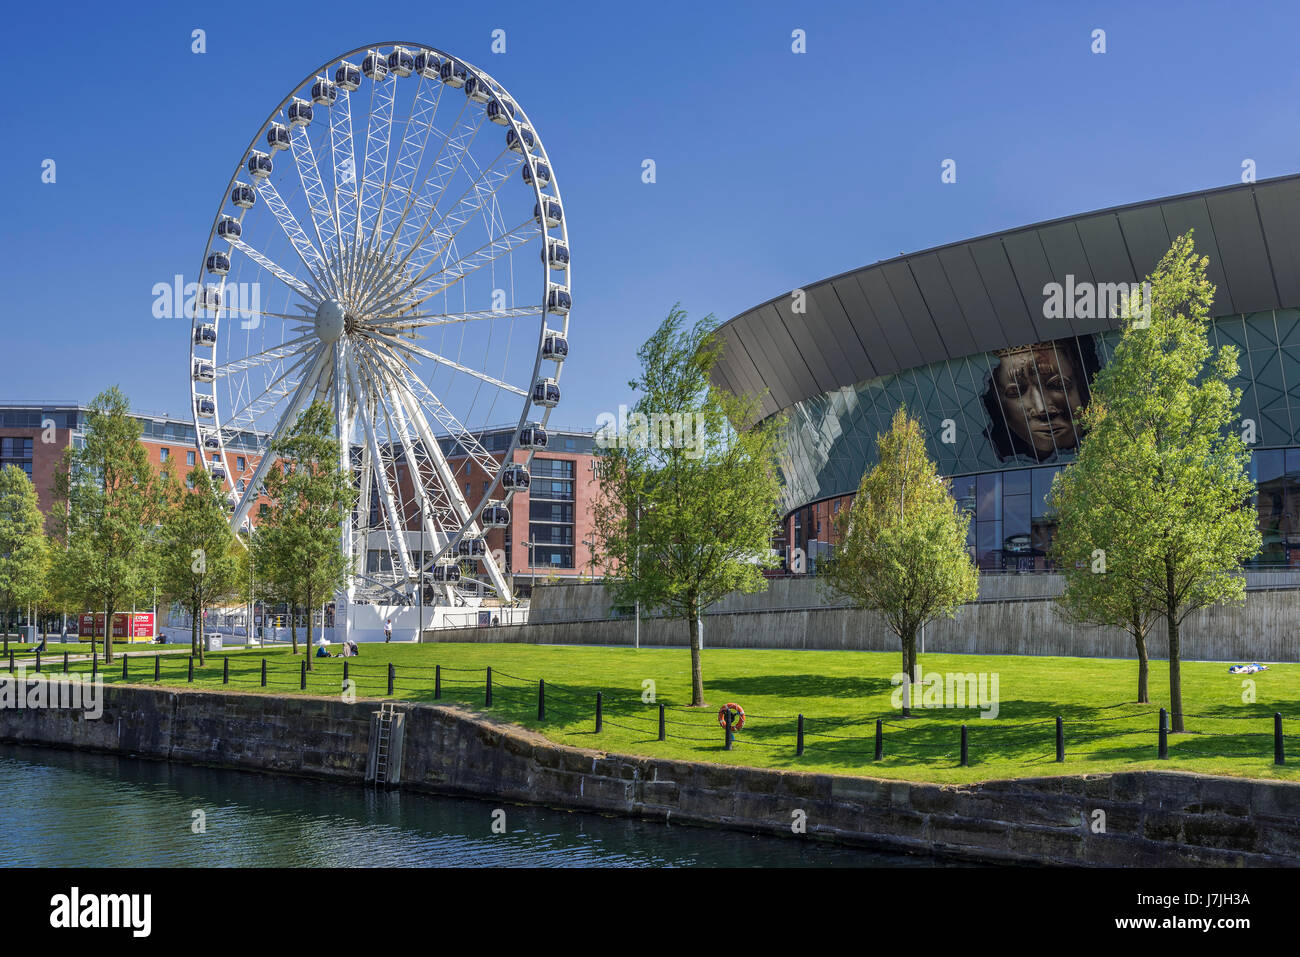 The big wheel and Echo Arena at the Albert Dock complex in Liverpool. Merseyside. North West Engalnd. Ferris Wheel - Stock Image